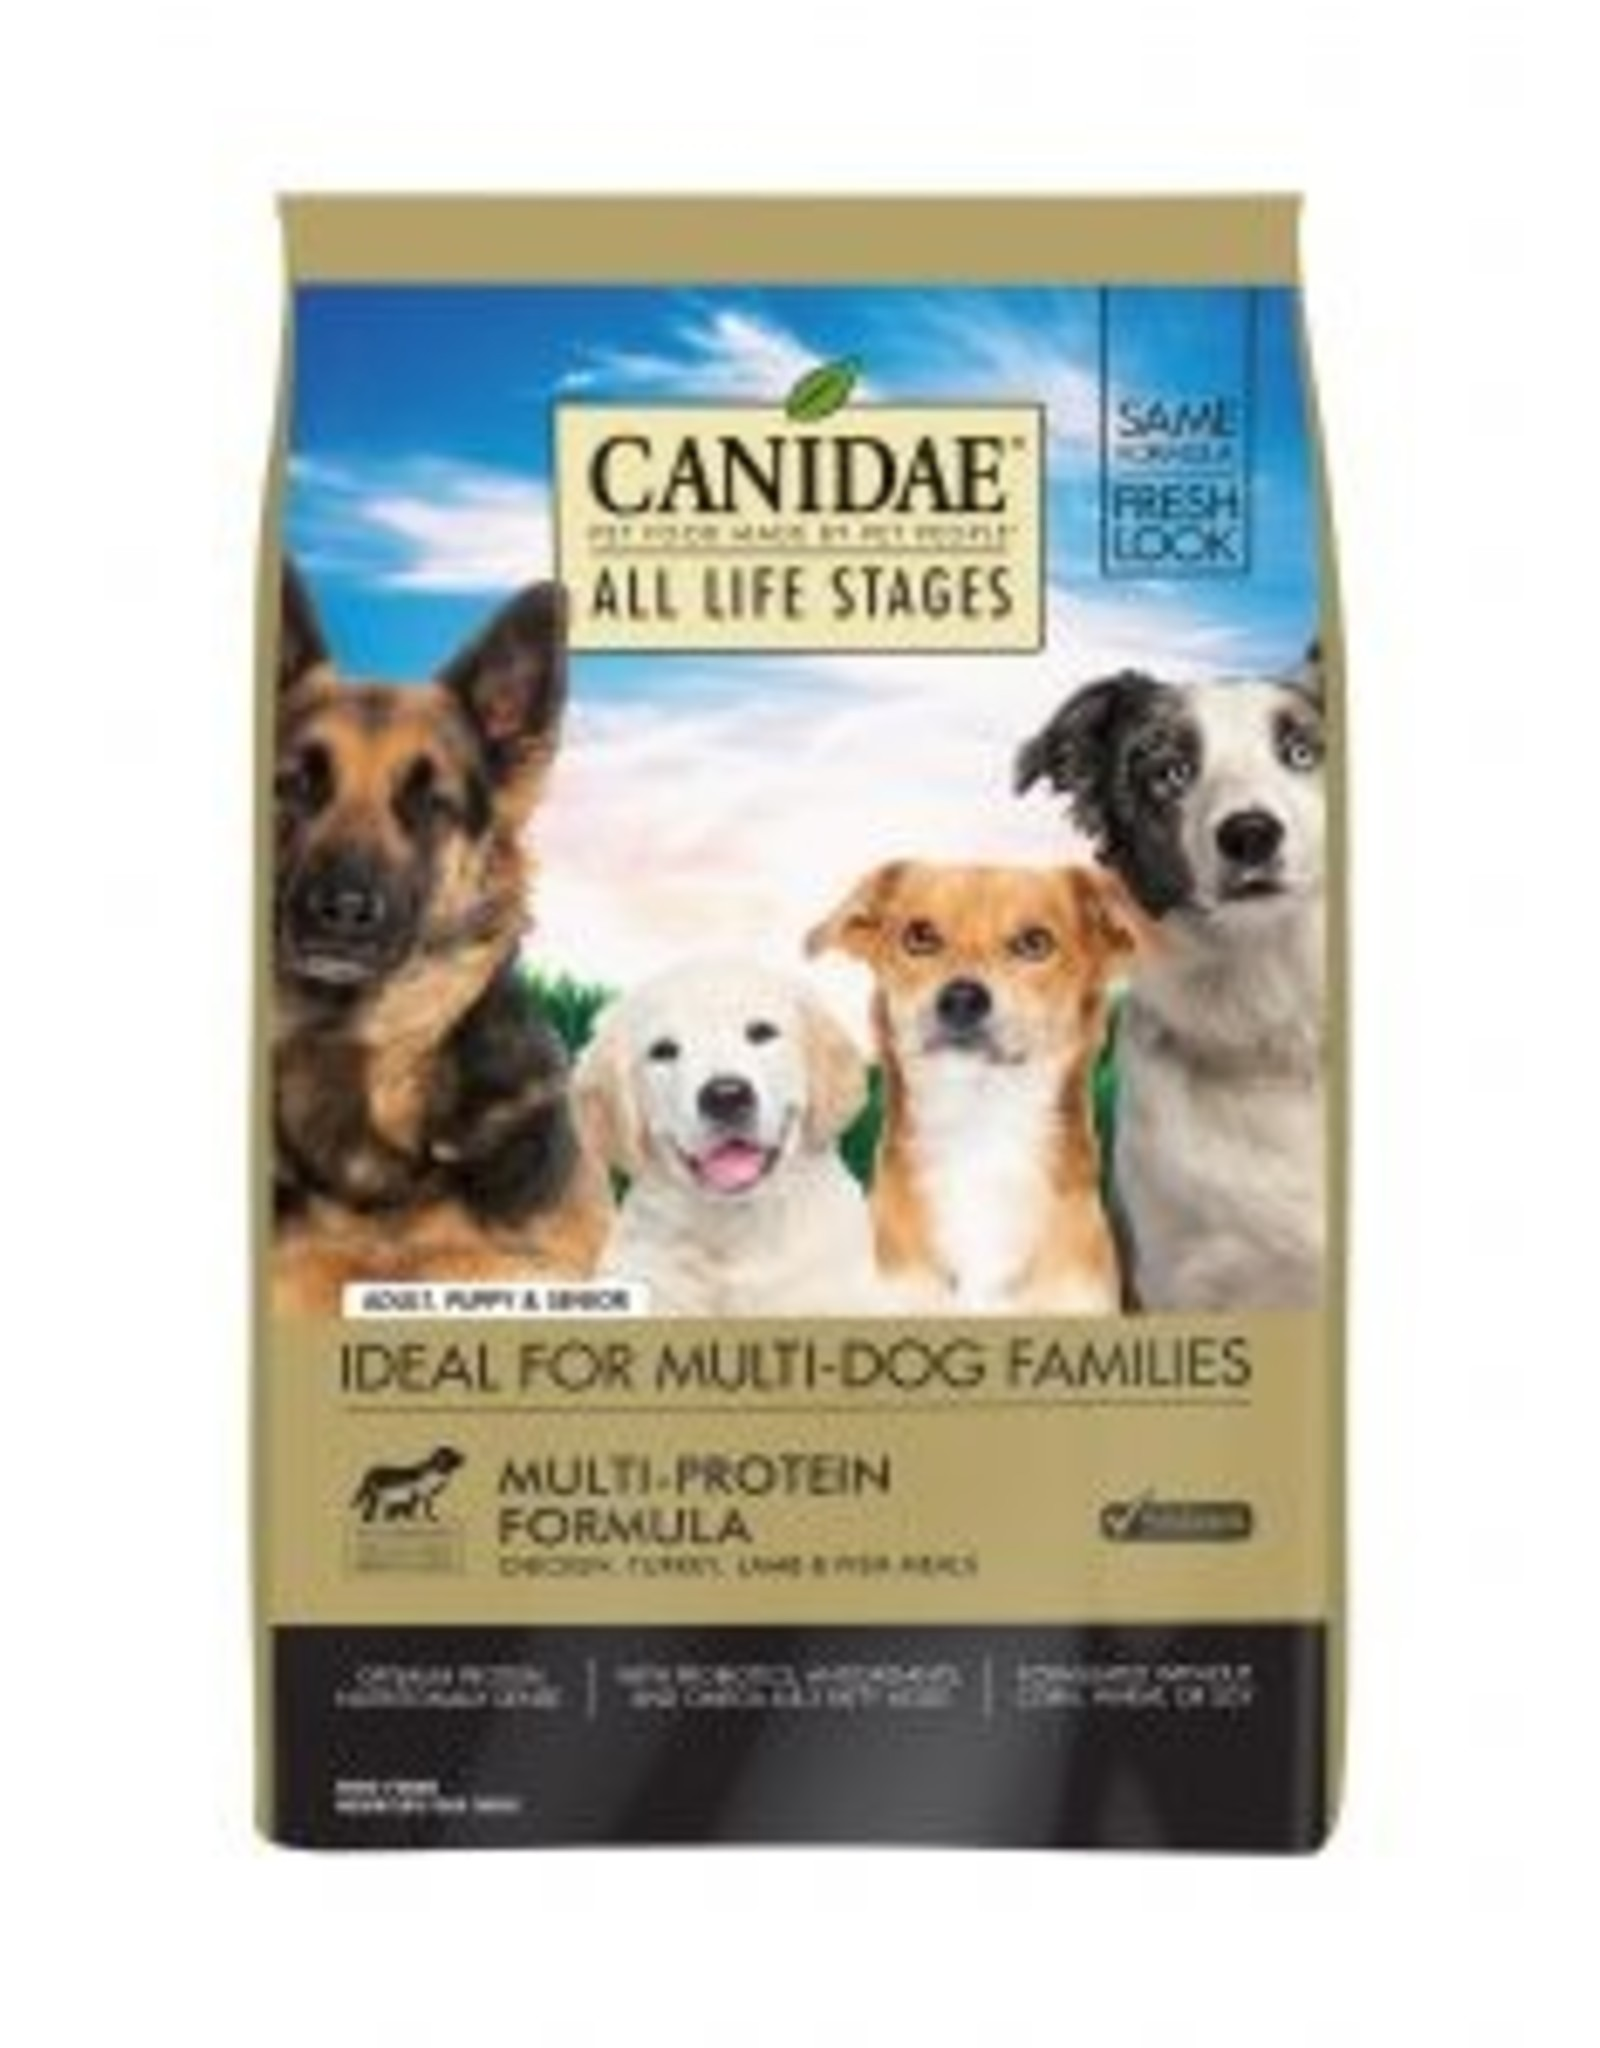 CANIDAE PET FOODS CANIDAE DOG ADULT MULTI-PROTEIN 5LBS